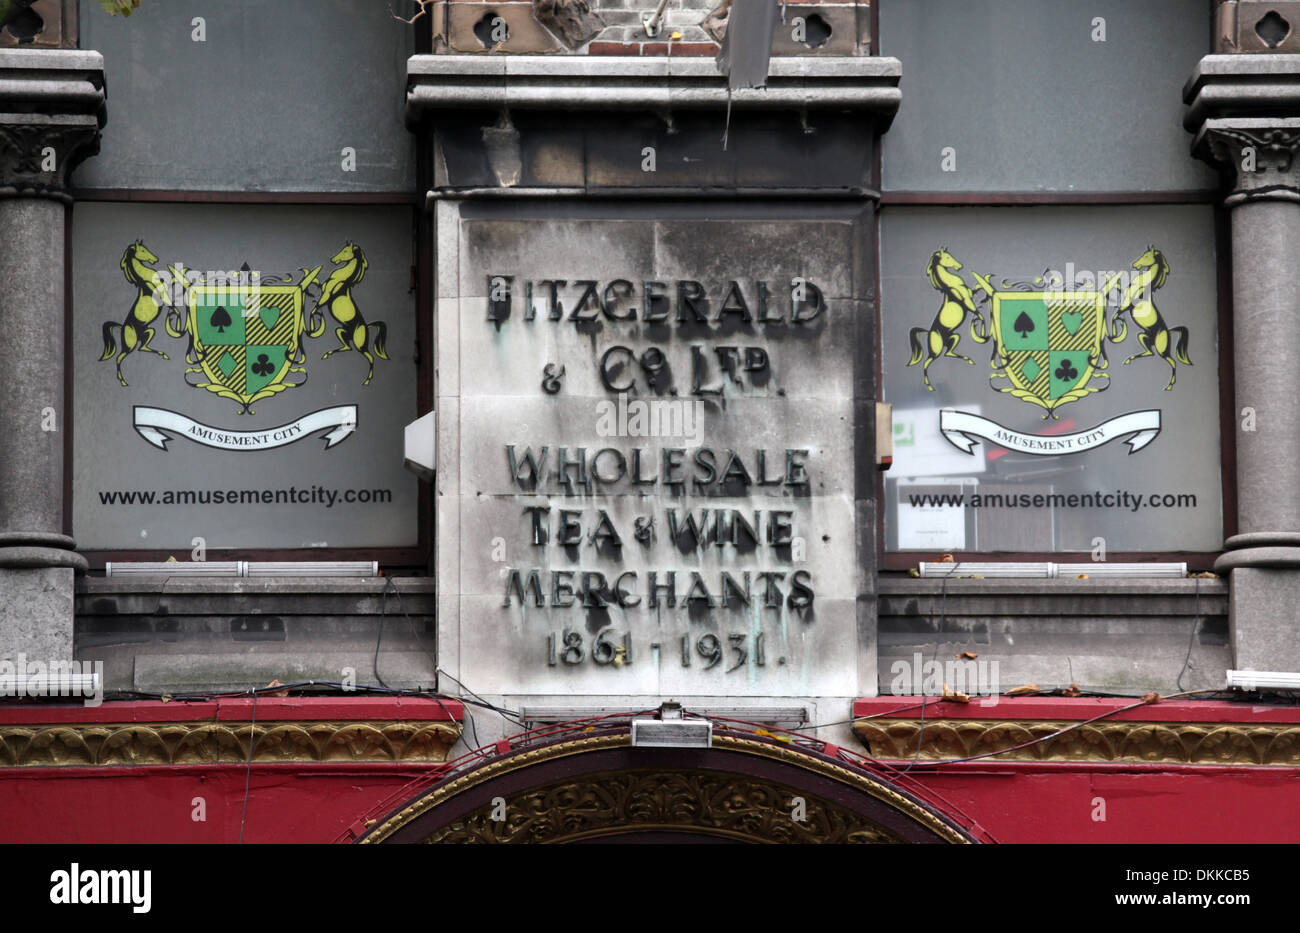 Fitzgerald and Co Ltd Sign in Dublin - Stock Image